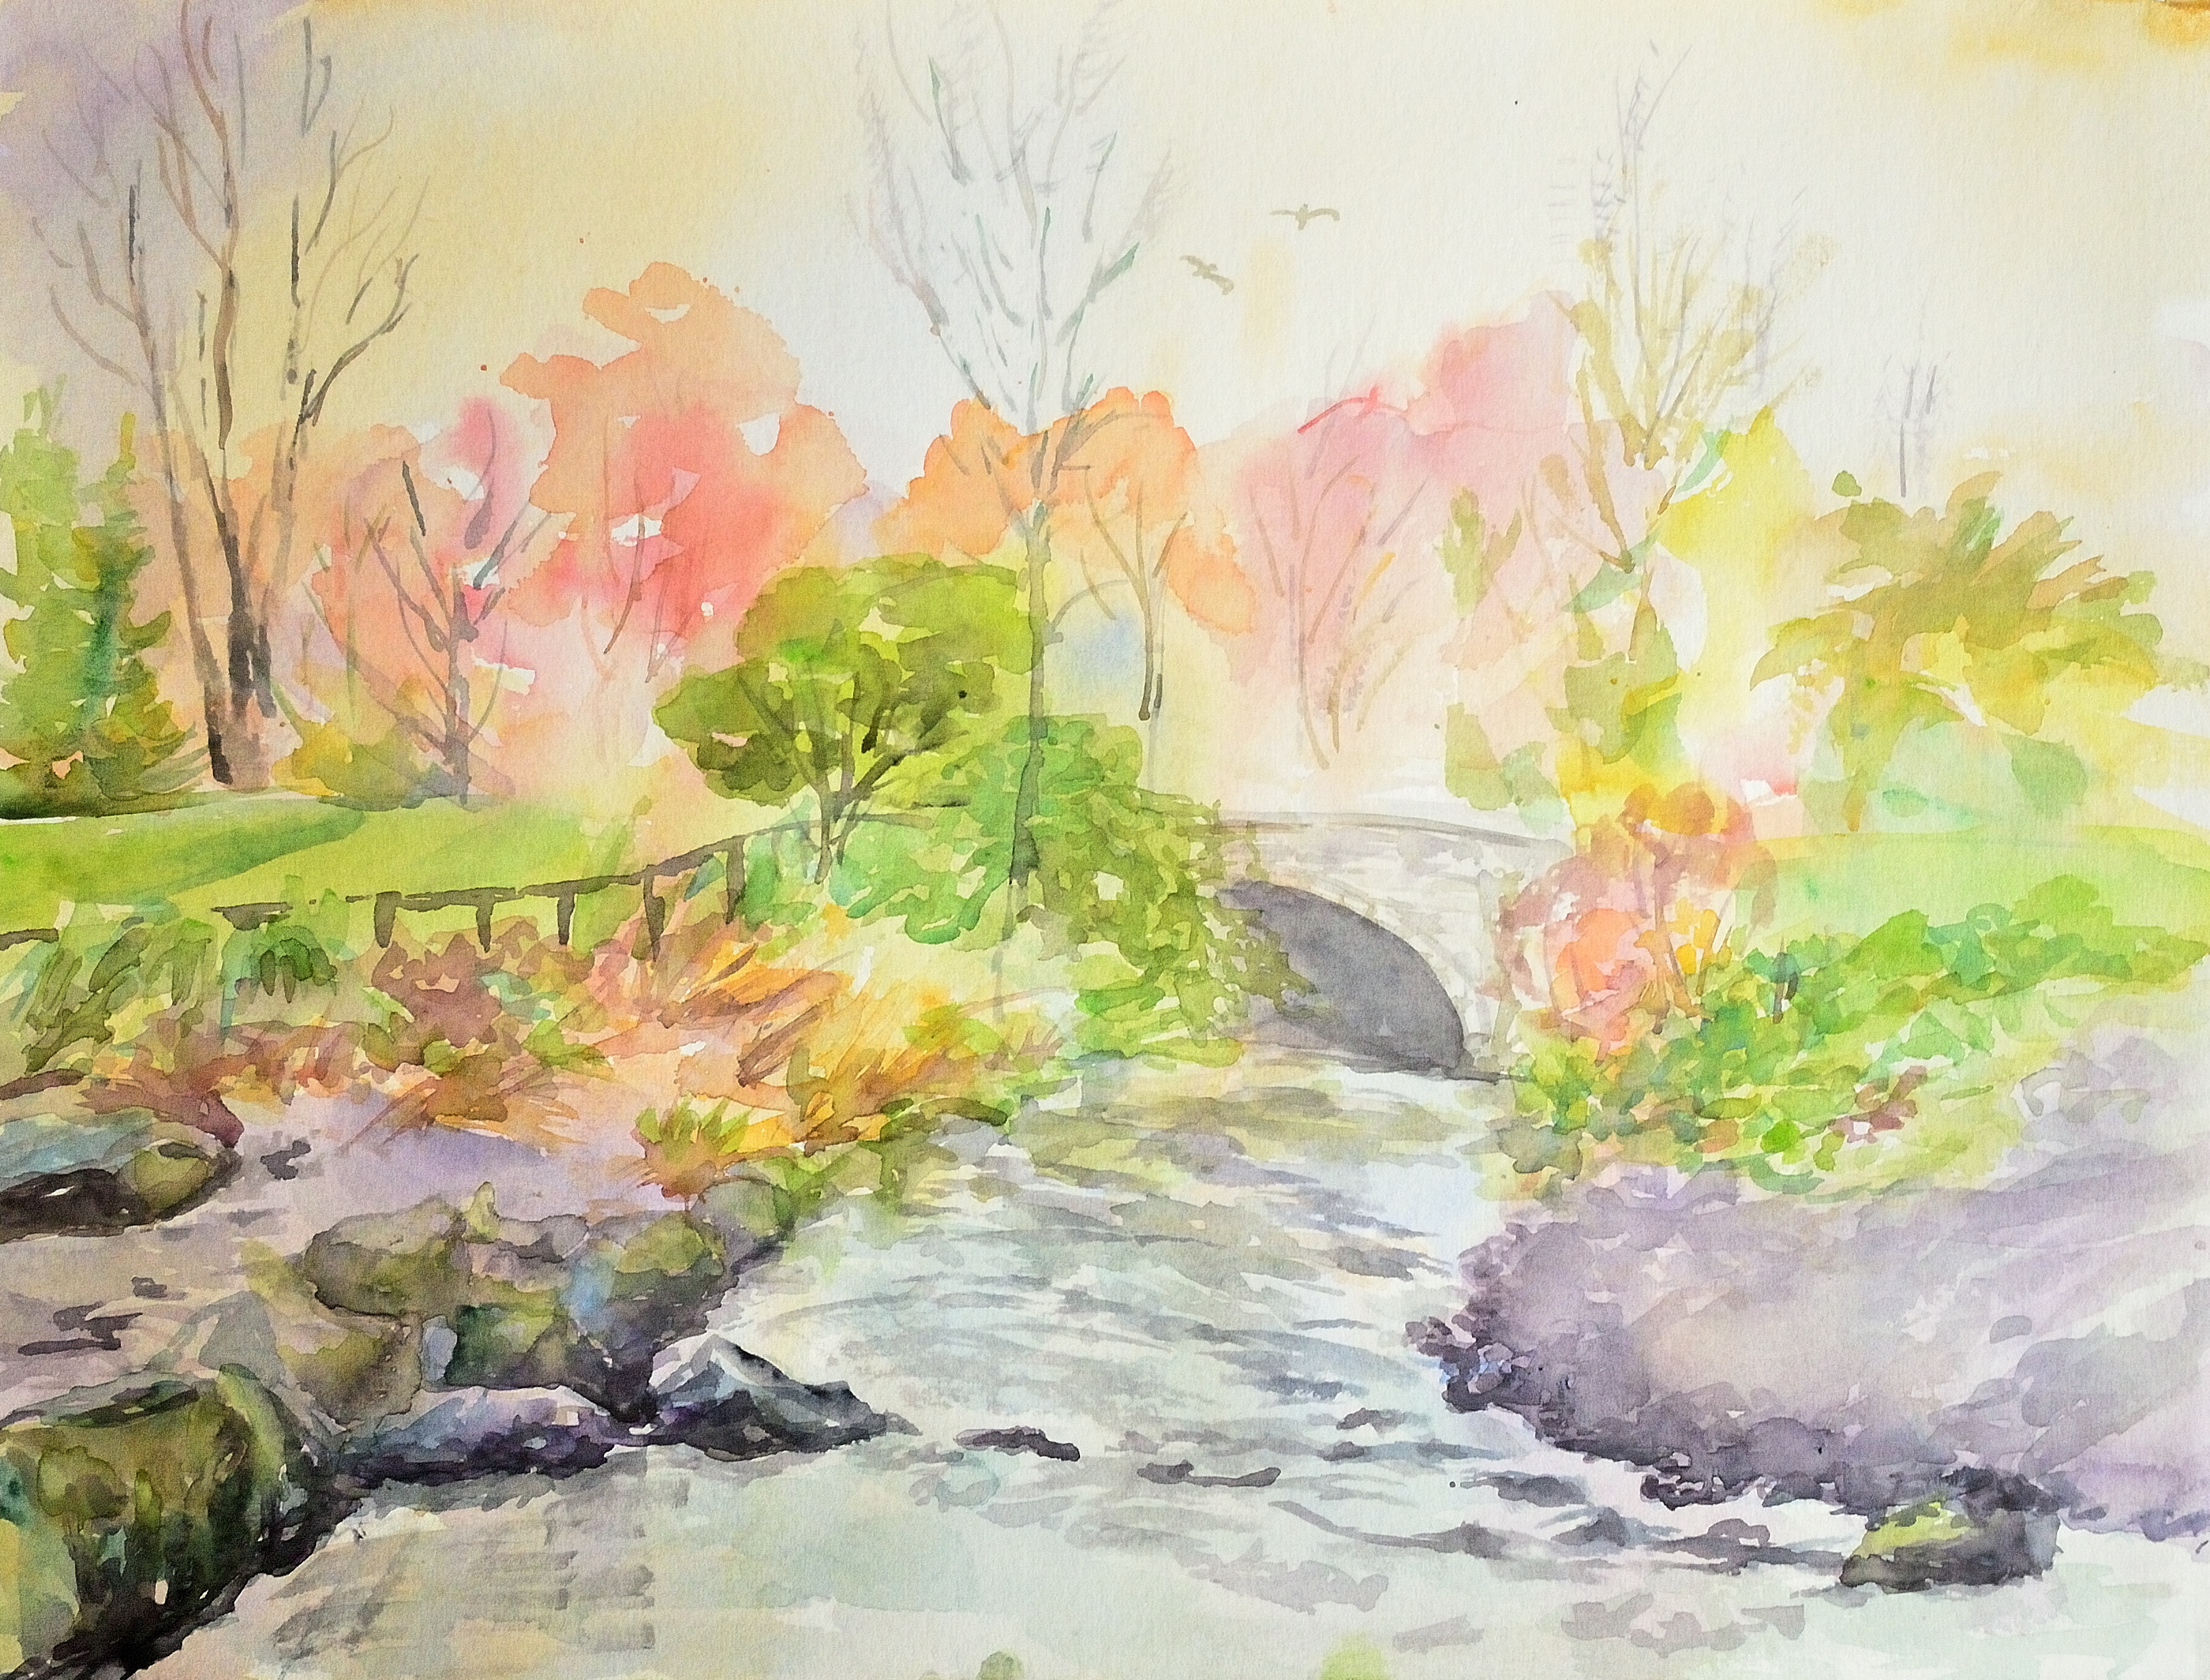 3239x2462 A Drizzling Day In Marlay Park, Dublin. Watercolor A3 Tofan